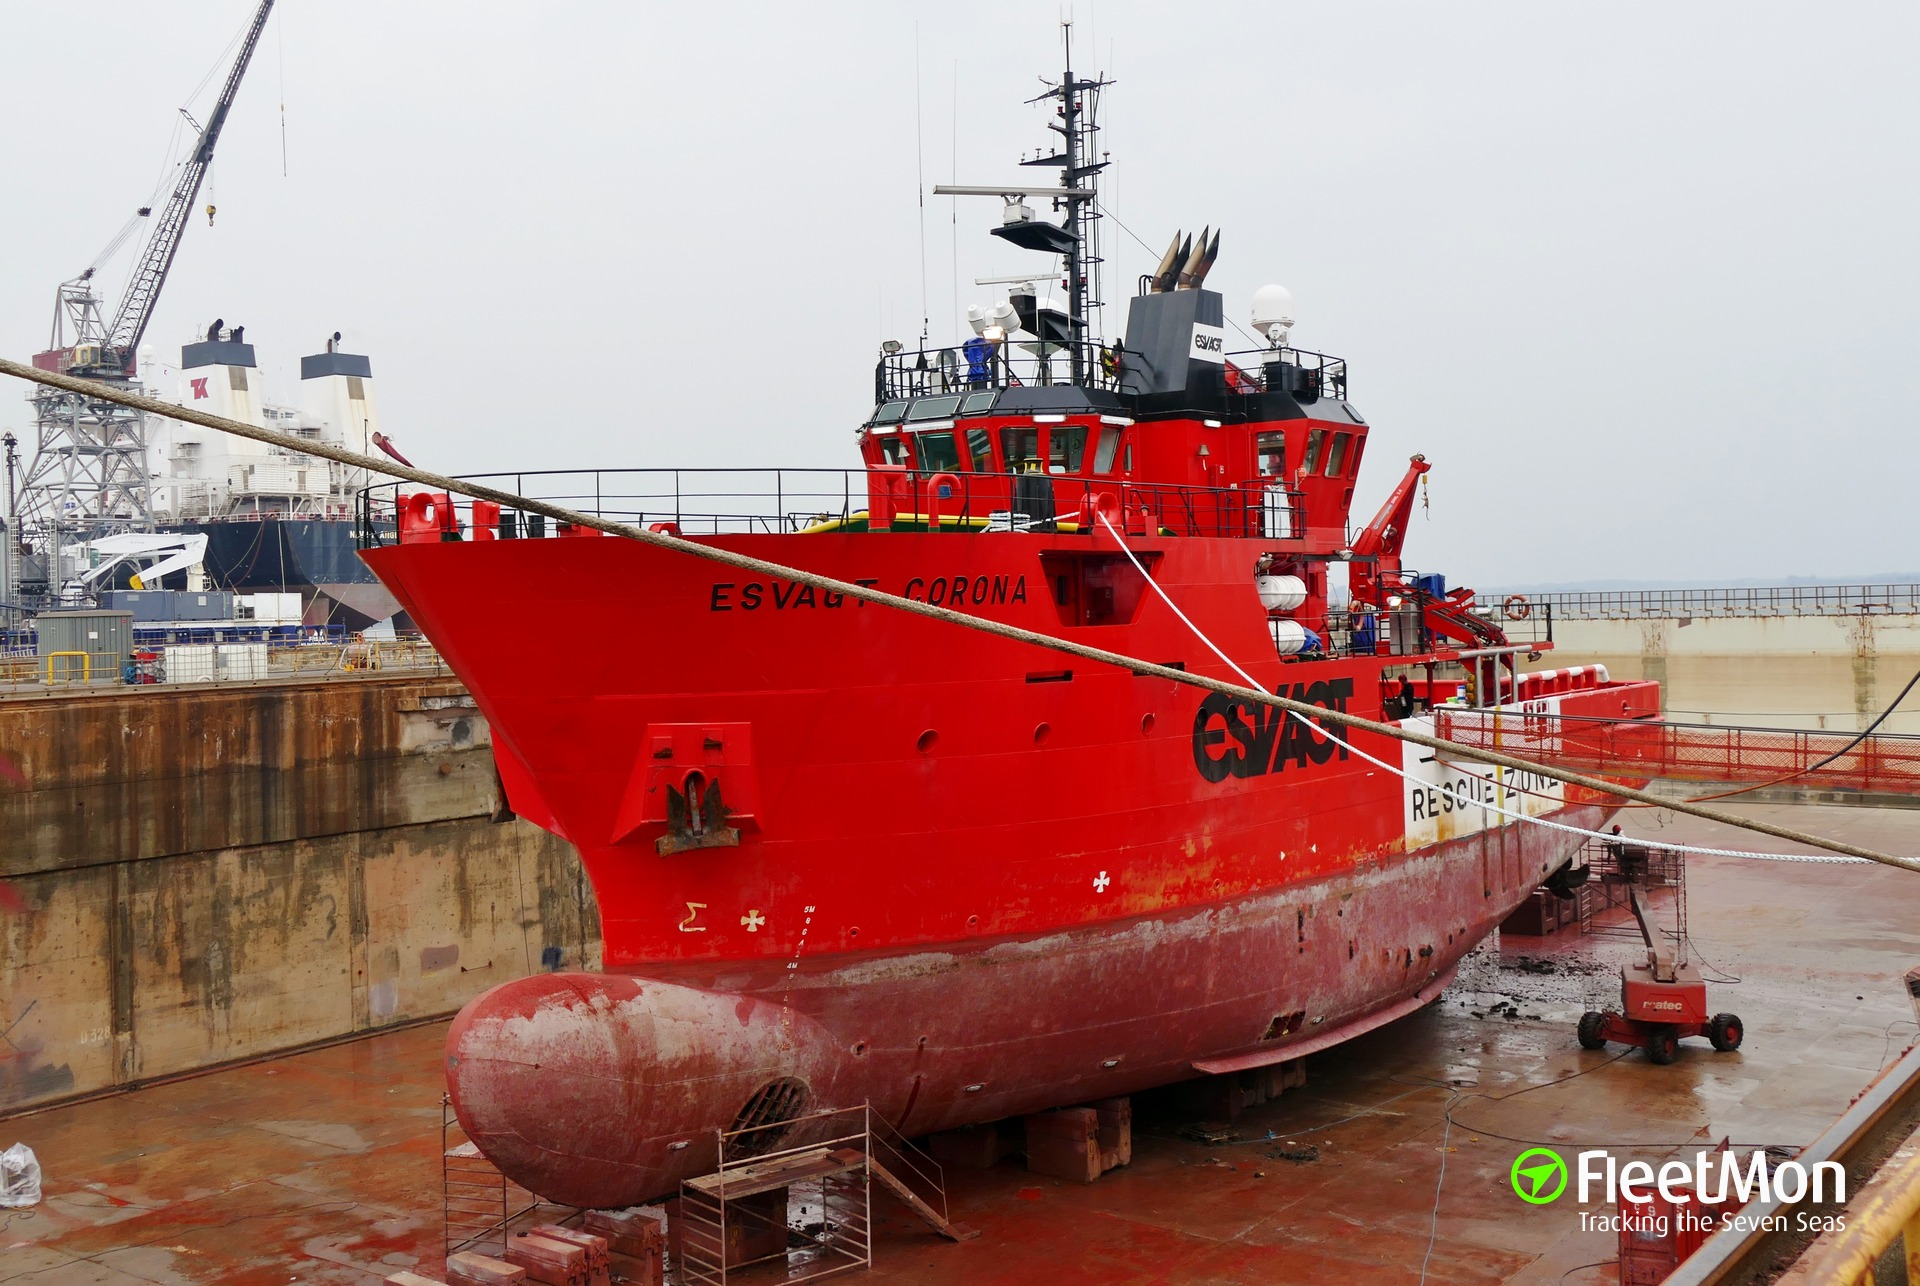 Offshore rescue vessel Esvagt Corona aground and refloated, Denmark